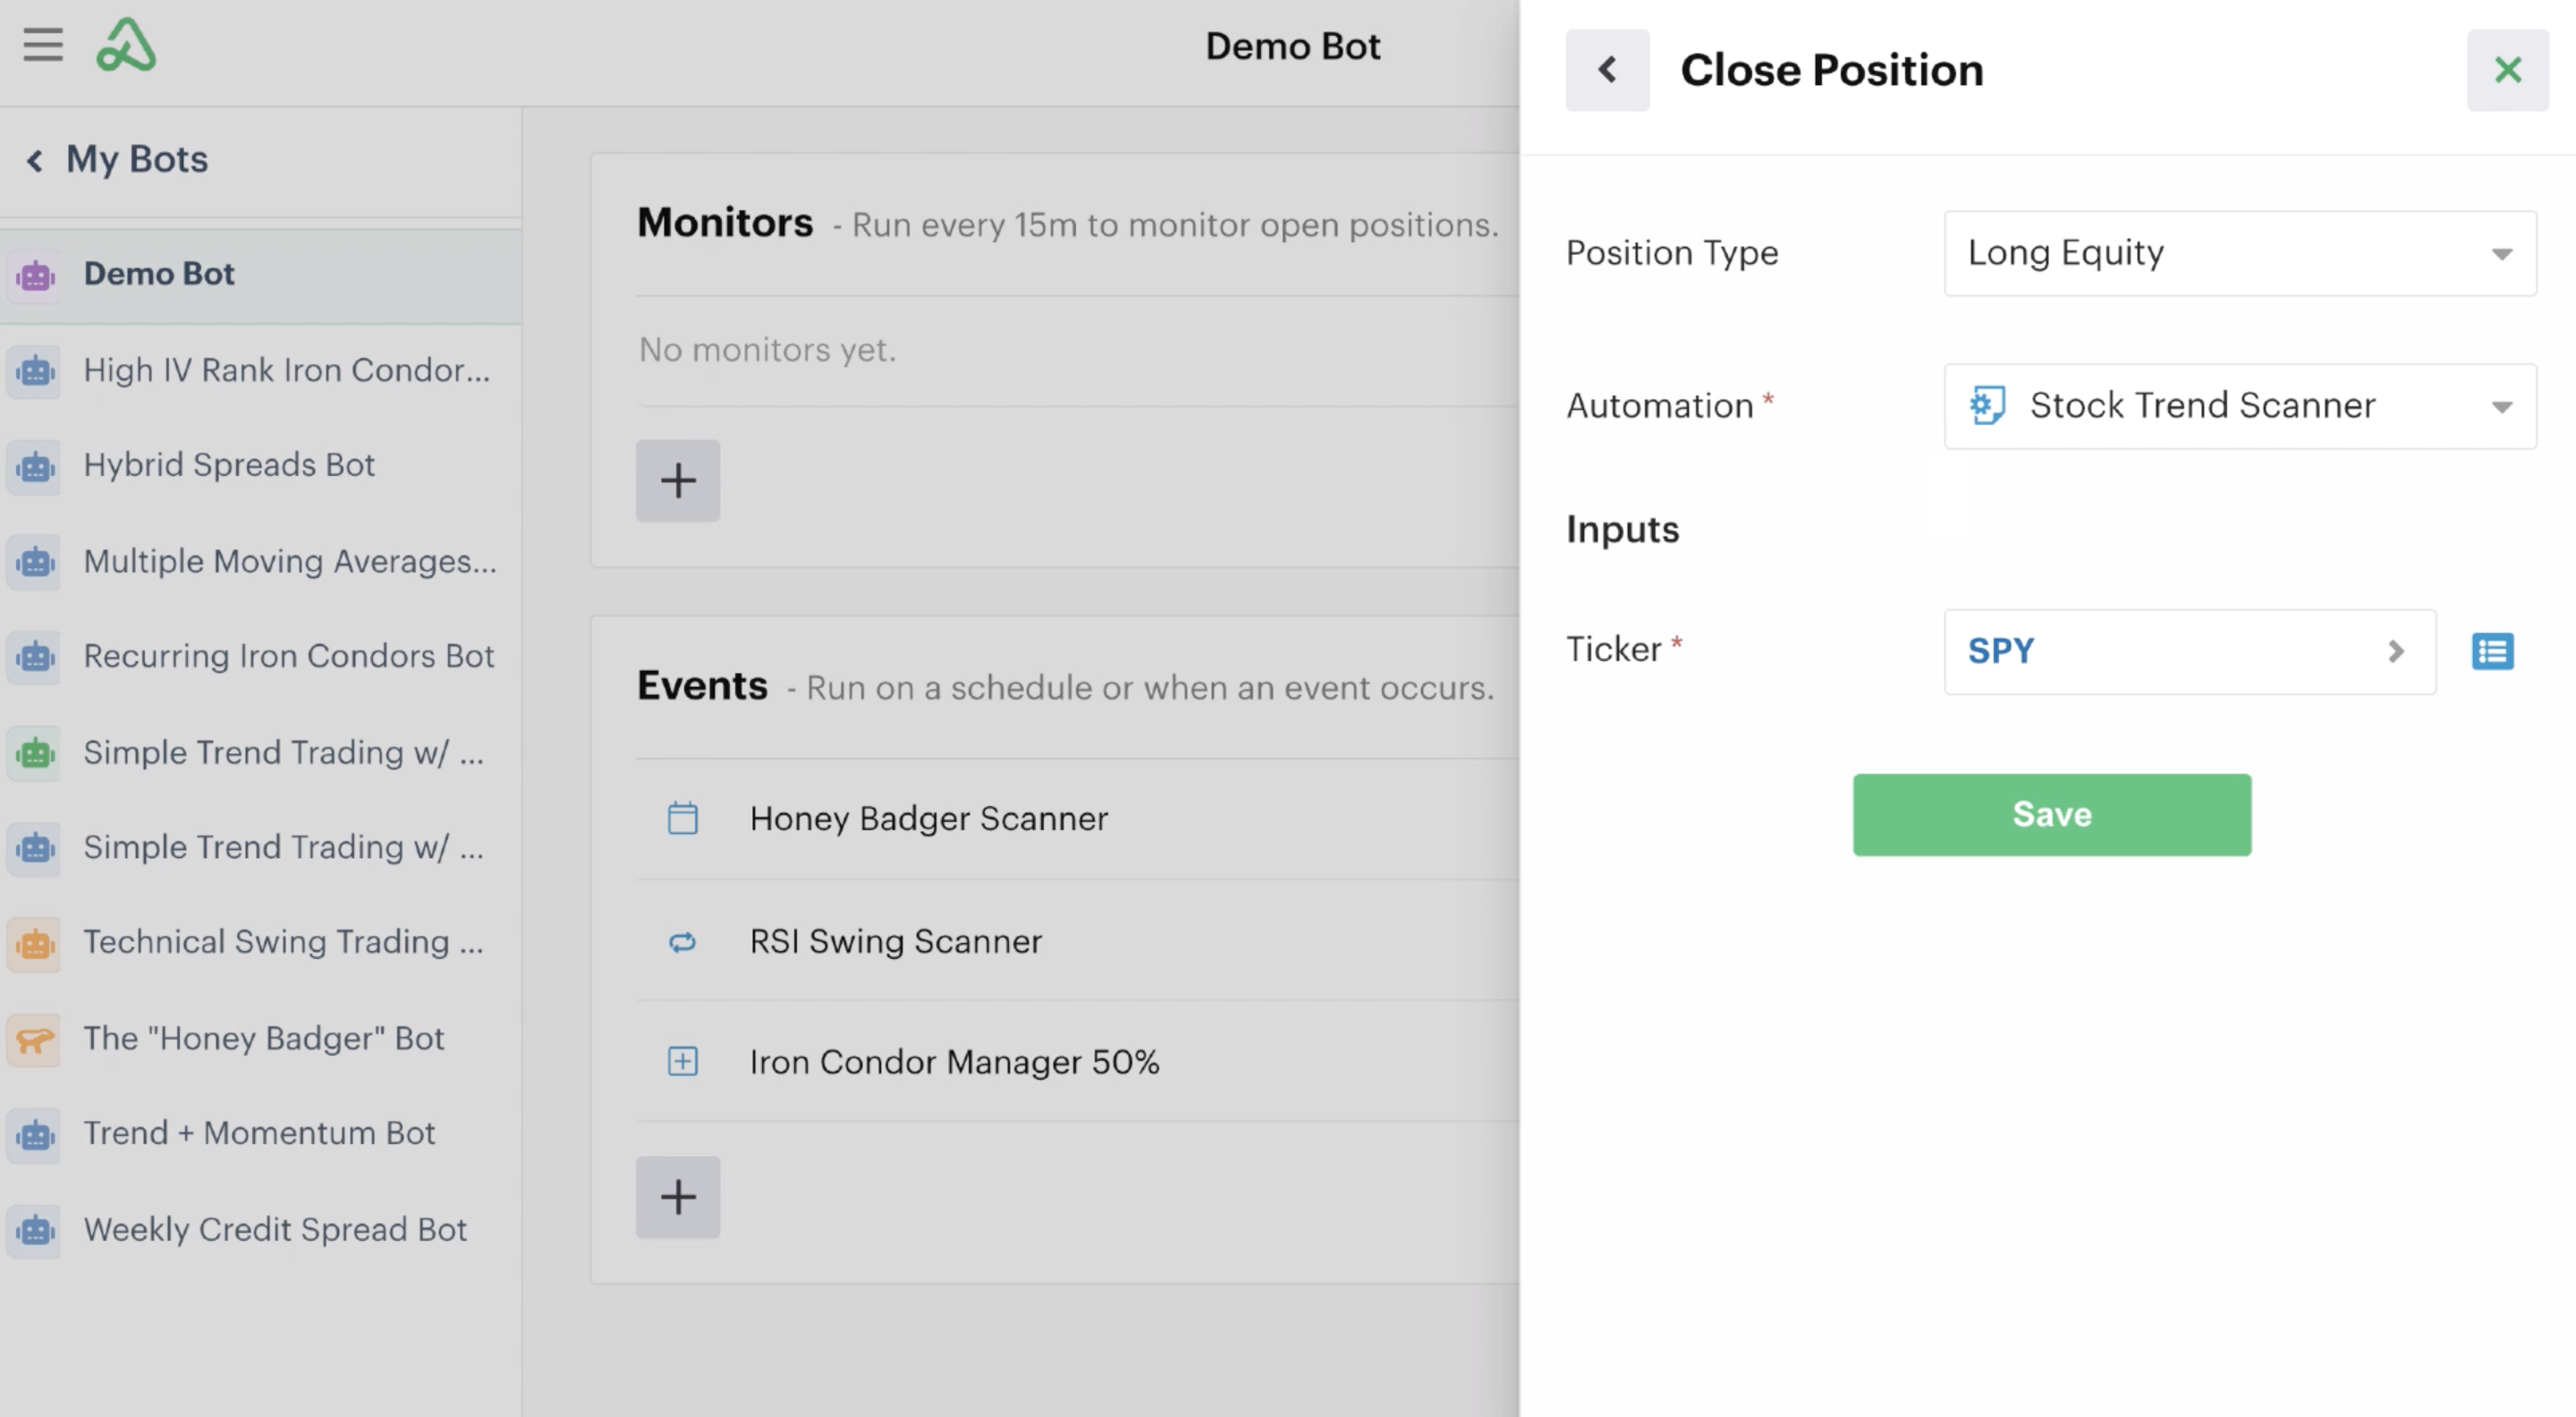 Adding scanner automation as a close position event